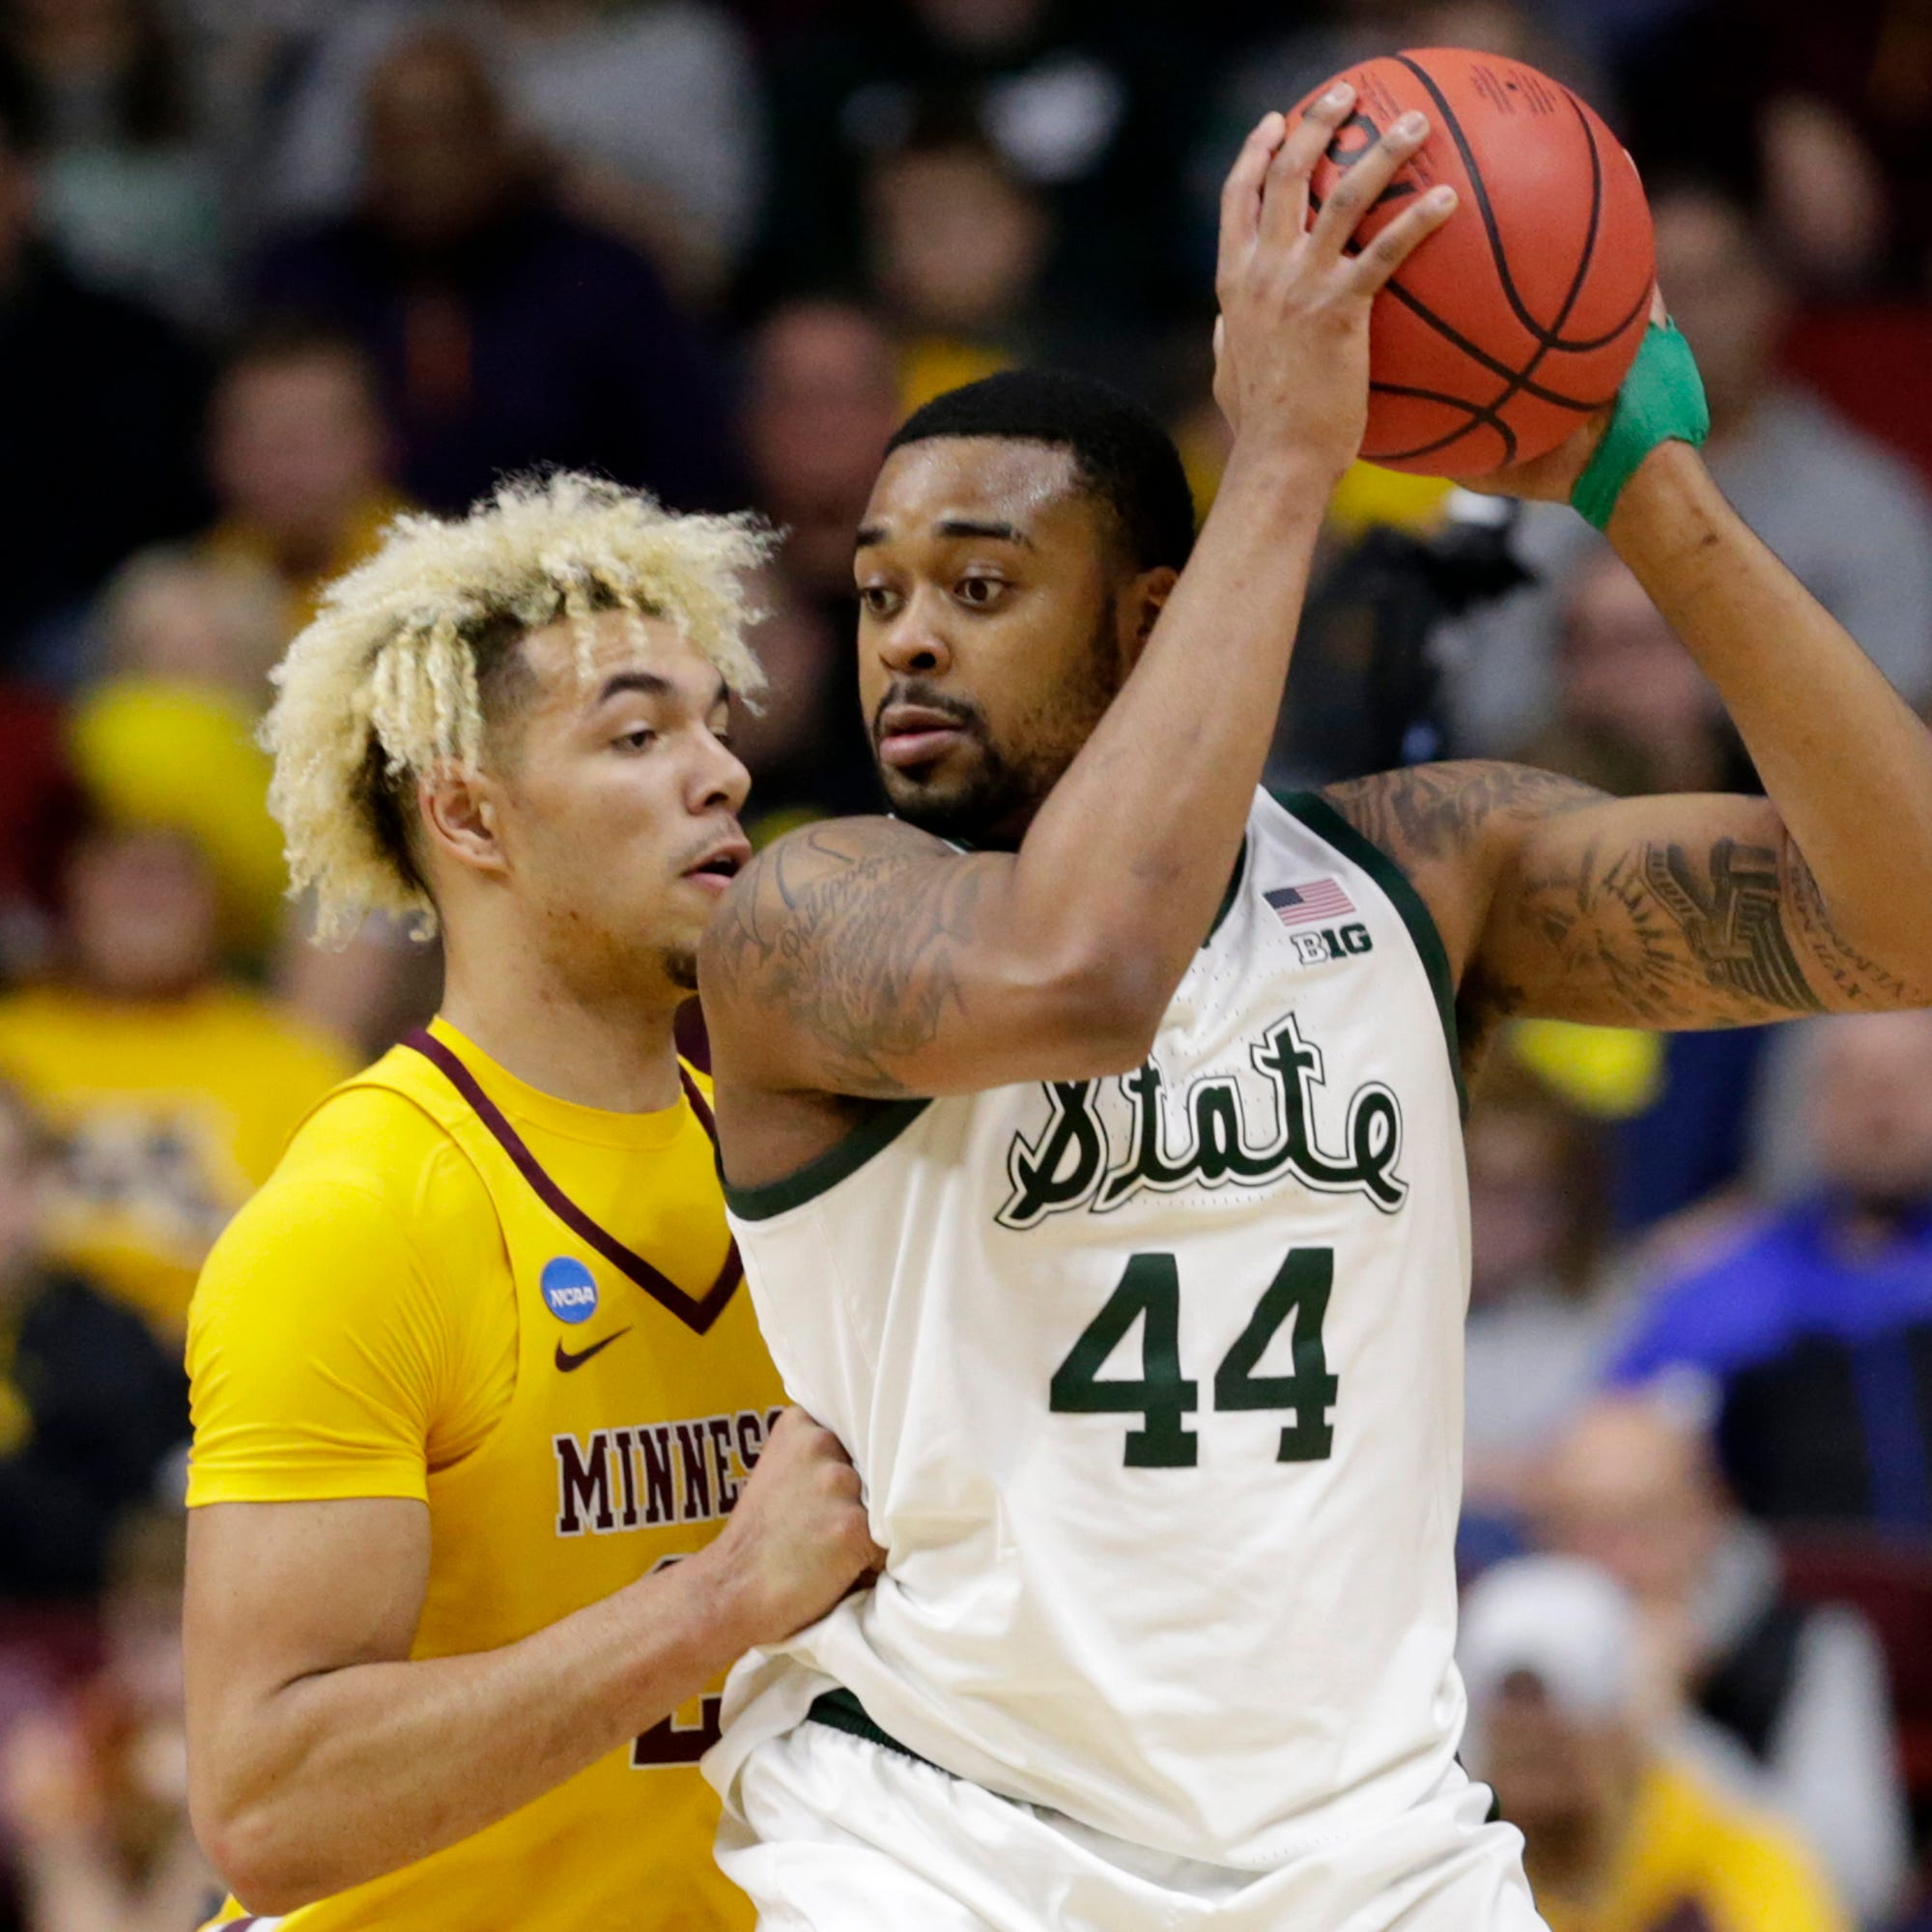 Michigan State teammates help get Nick Ward refocused, back on right track